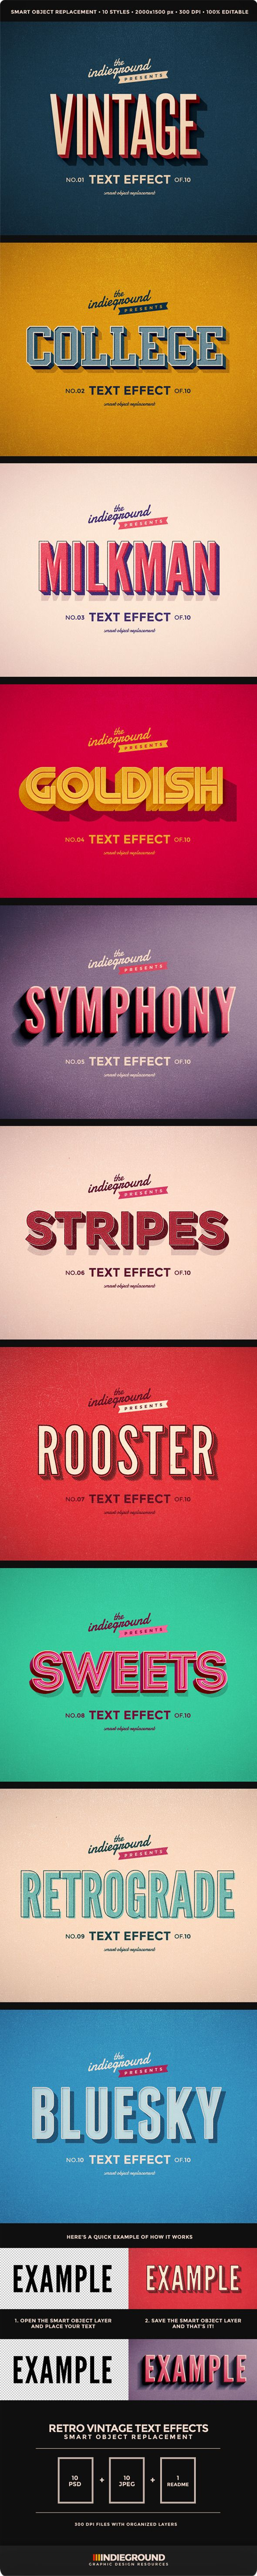 Retro Vintage Text Effects - Text Effects Actions. Only $5 for layered psd files!